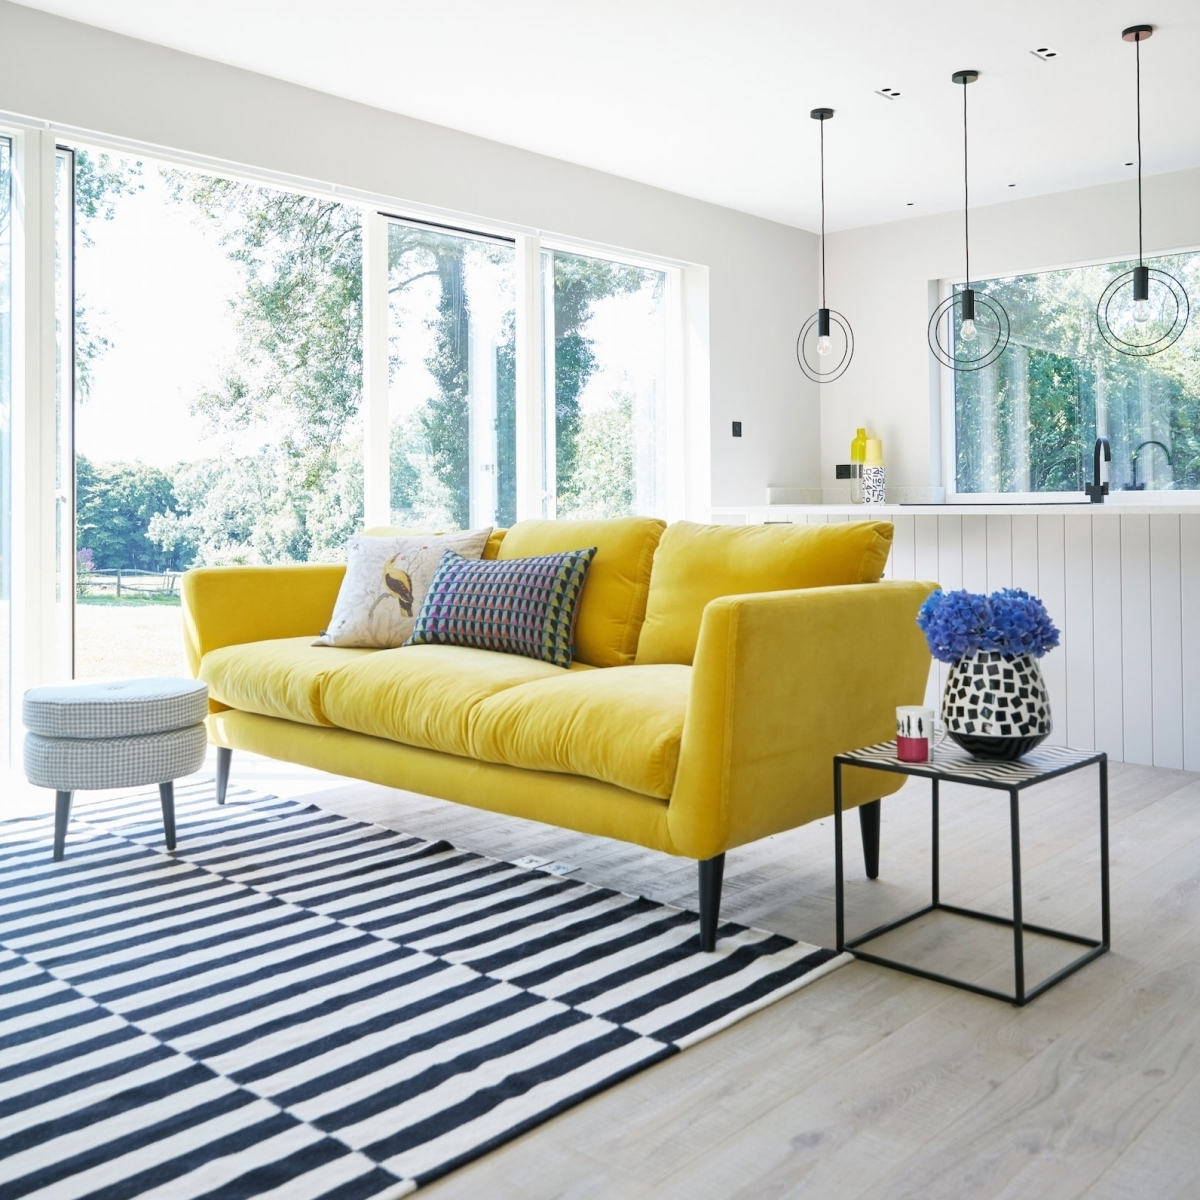 Yellow Sofa Chairs Intended For Well Known Living Room : Yellow Living Room Designs Cheap Chairs With Walls (View 19 of 20)